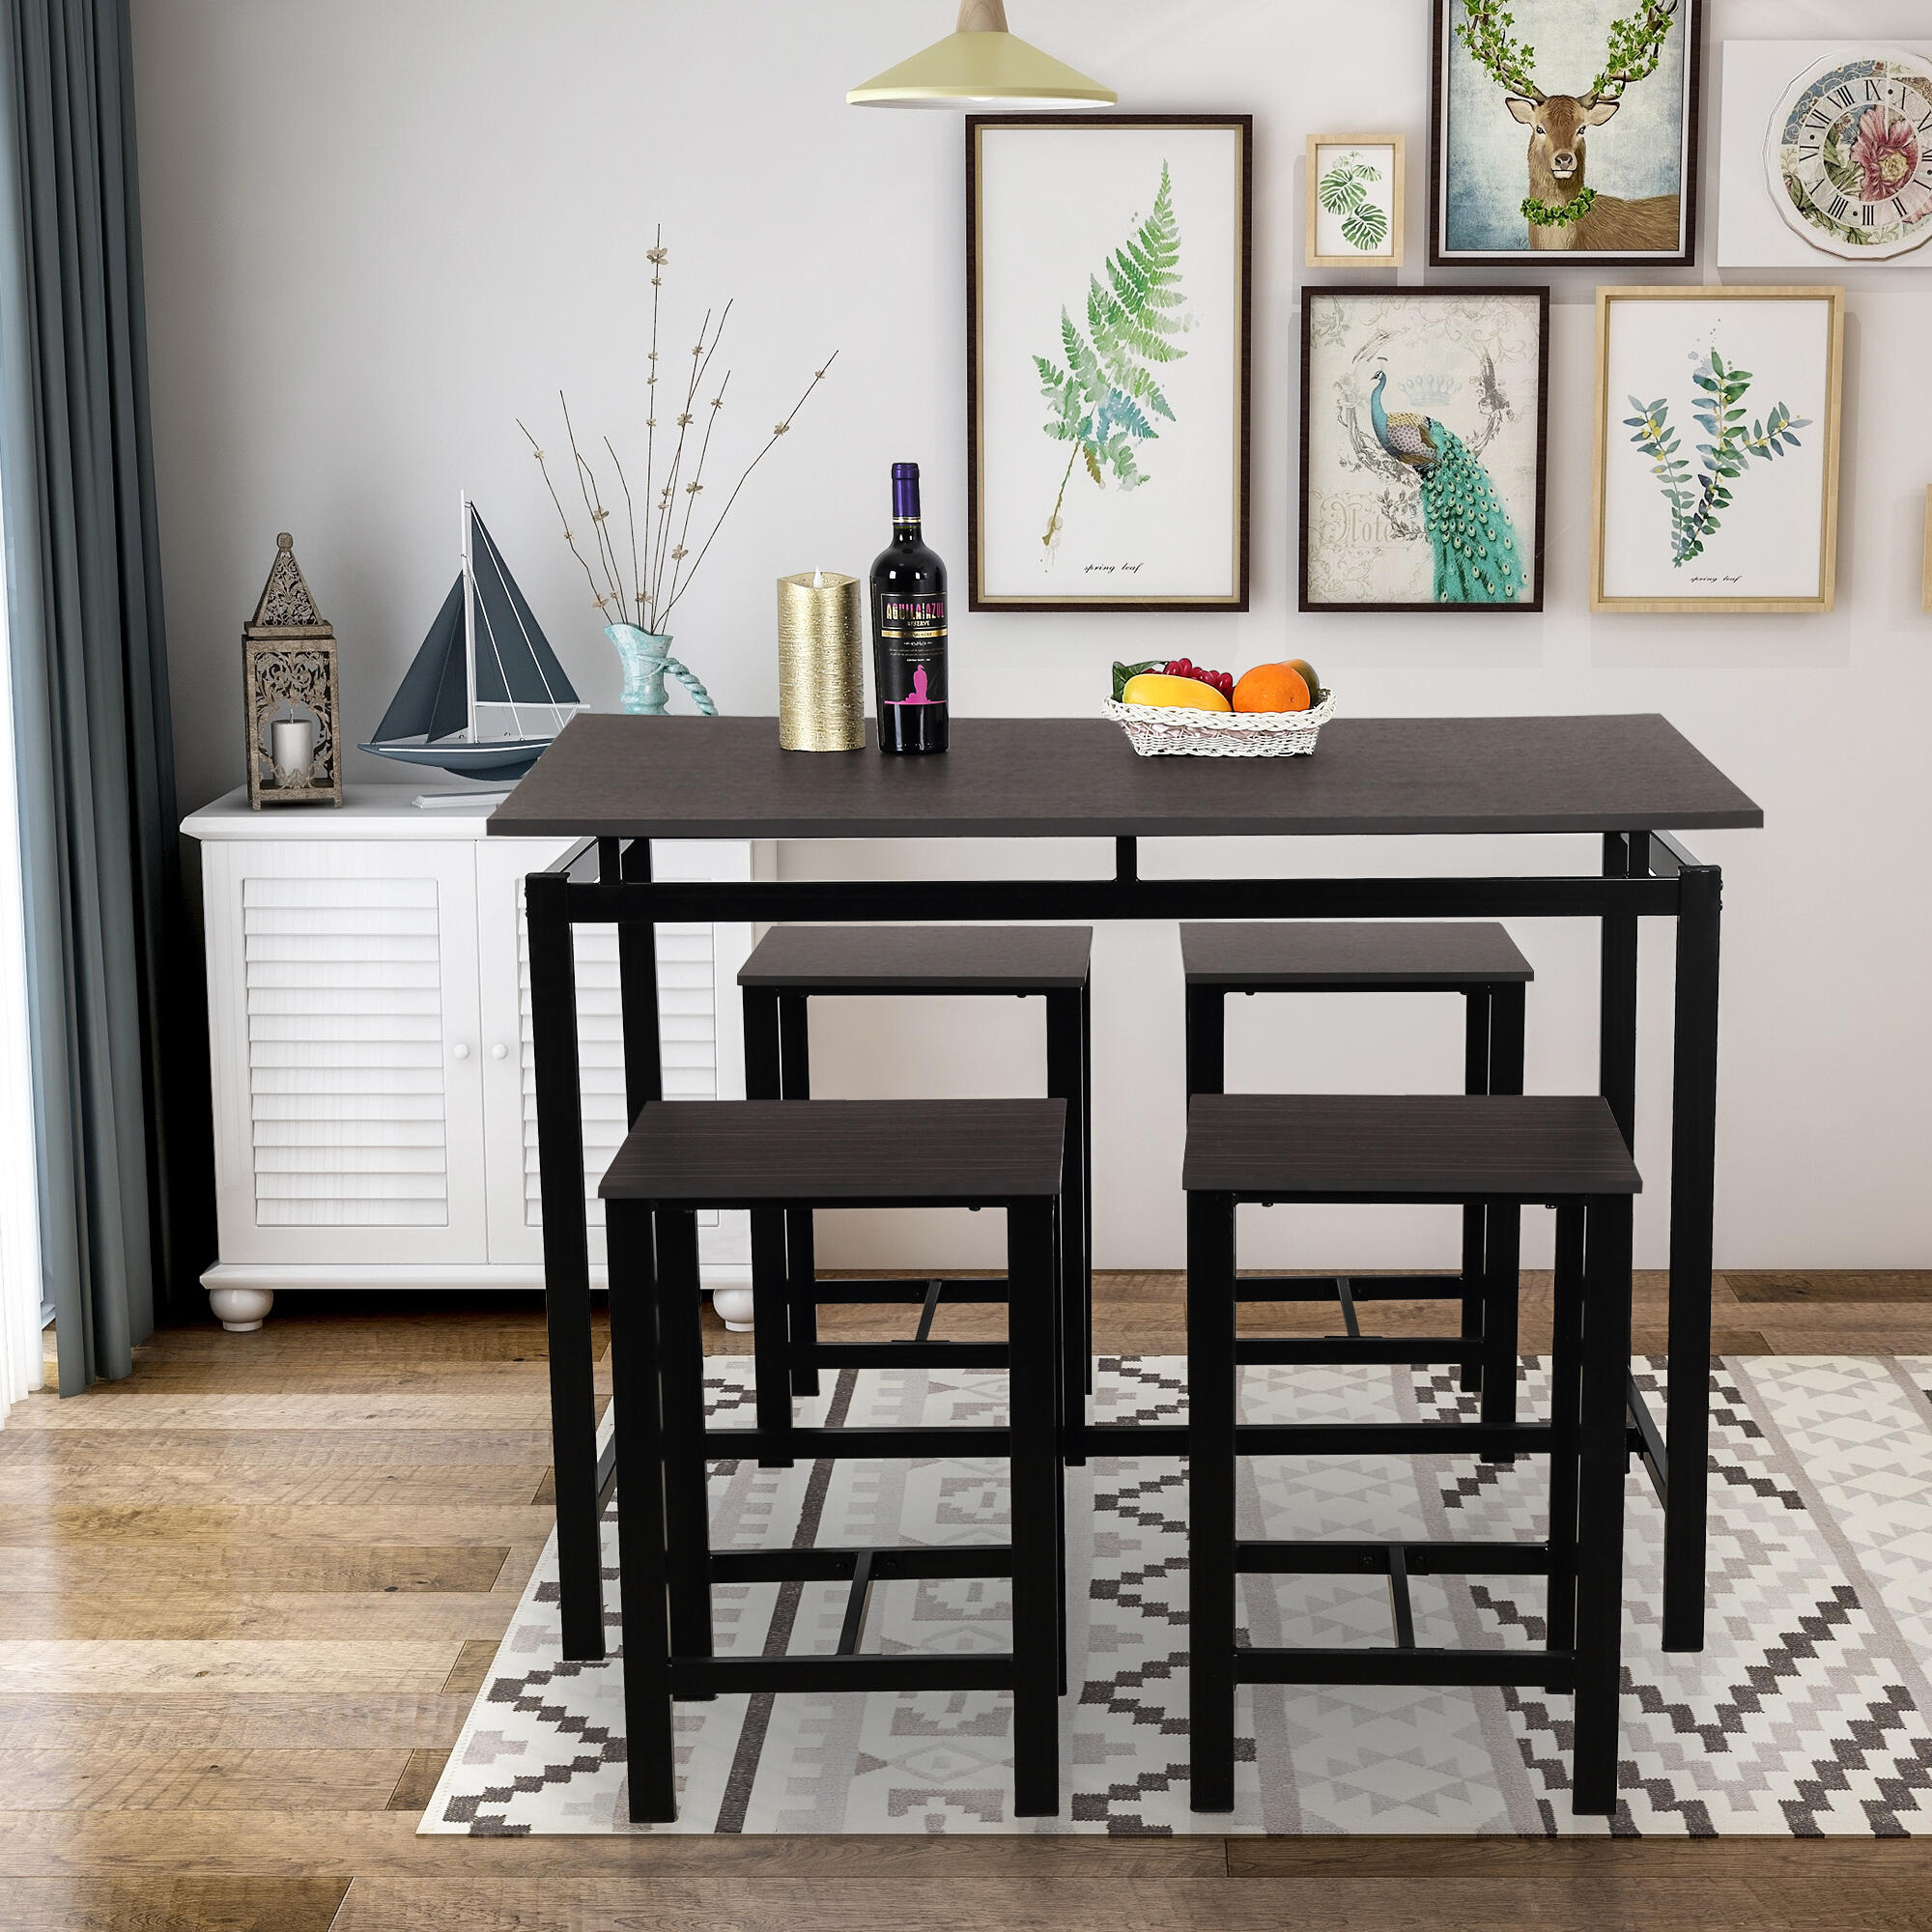 Harper & Bright Designs 5-Piece Dining Set Wood & Metal Pub Table